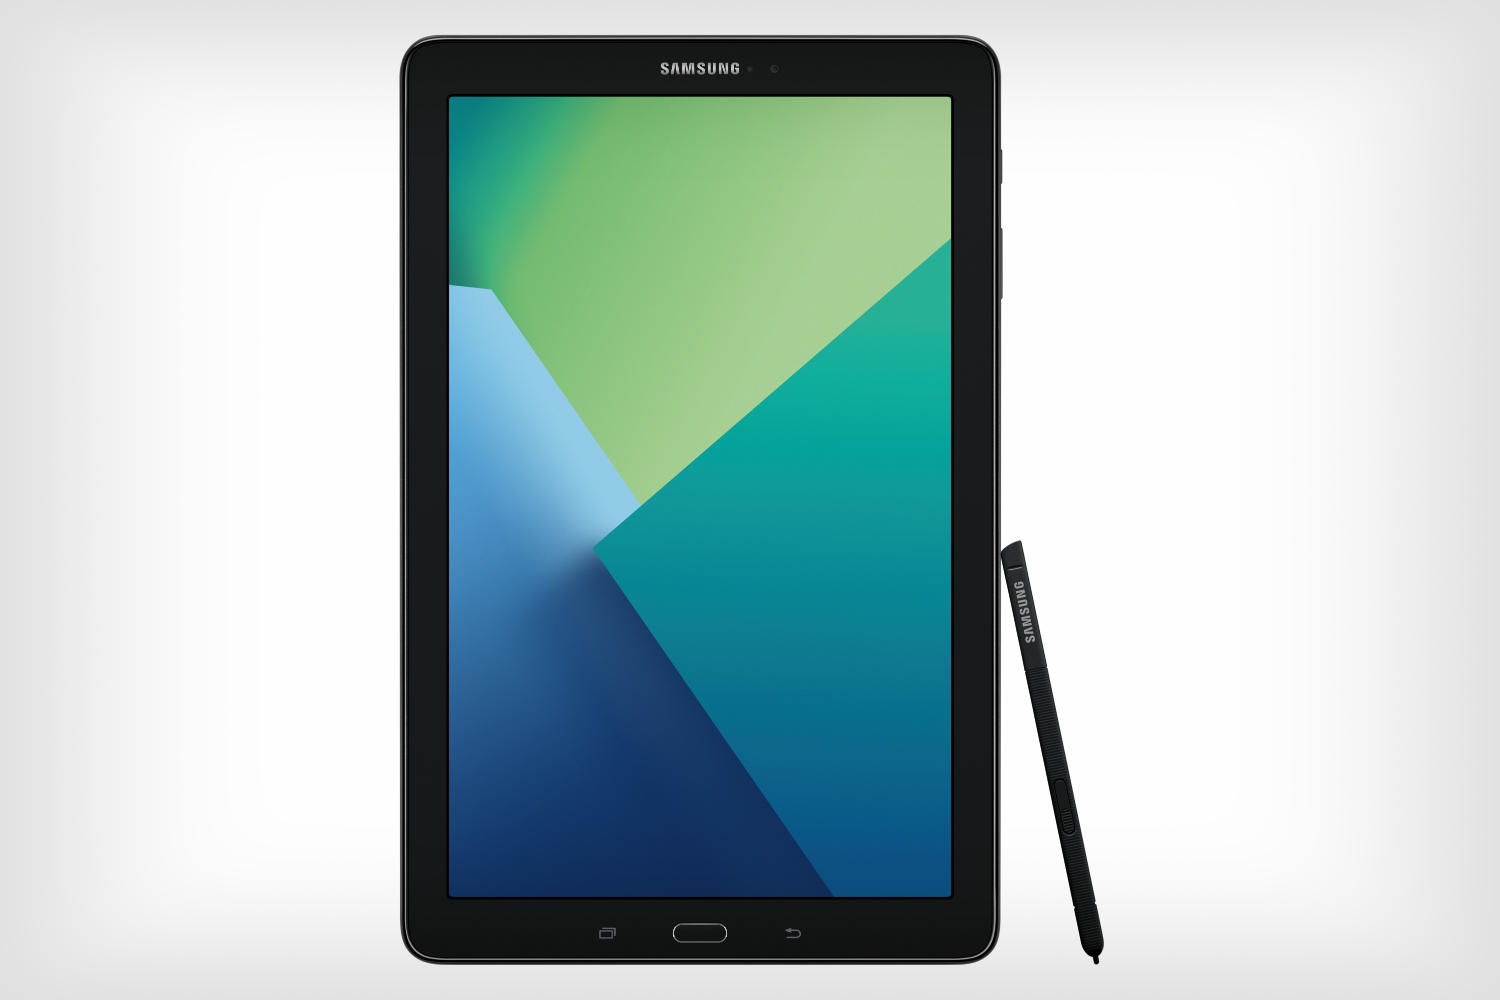 samsung tablet png. samsung galaxy tab s pen a 10 1 png tablet m